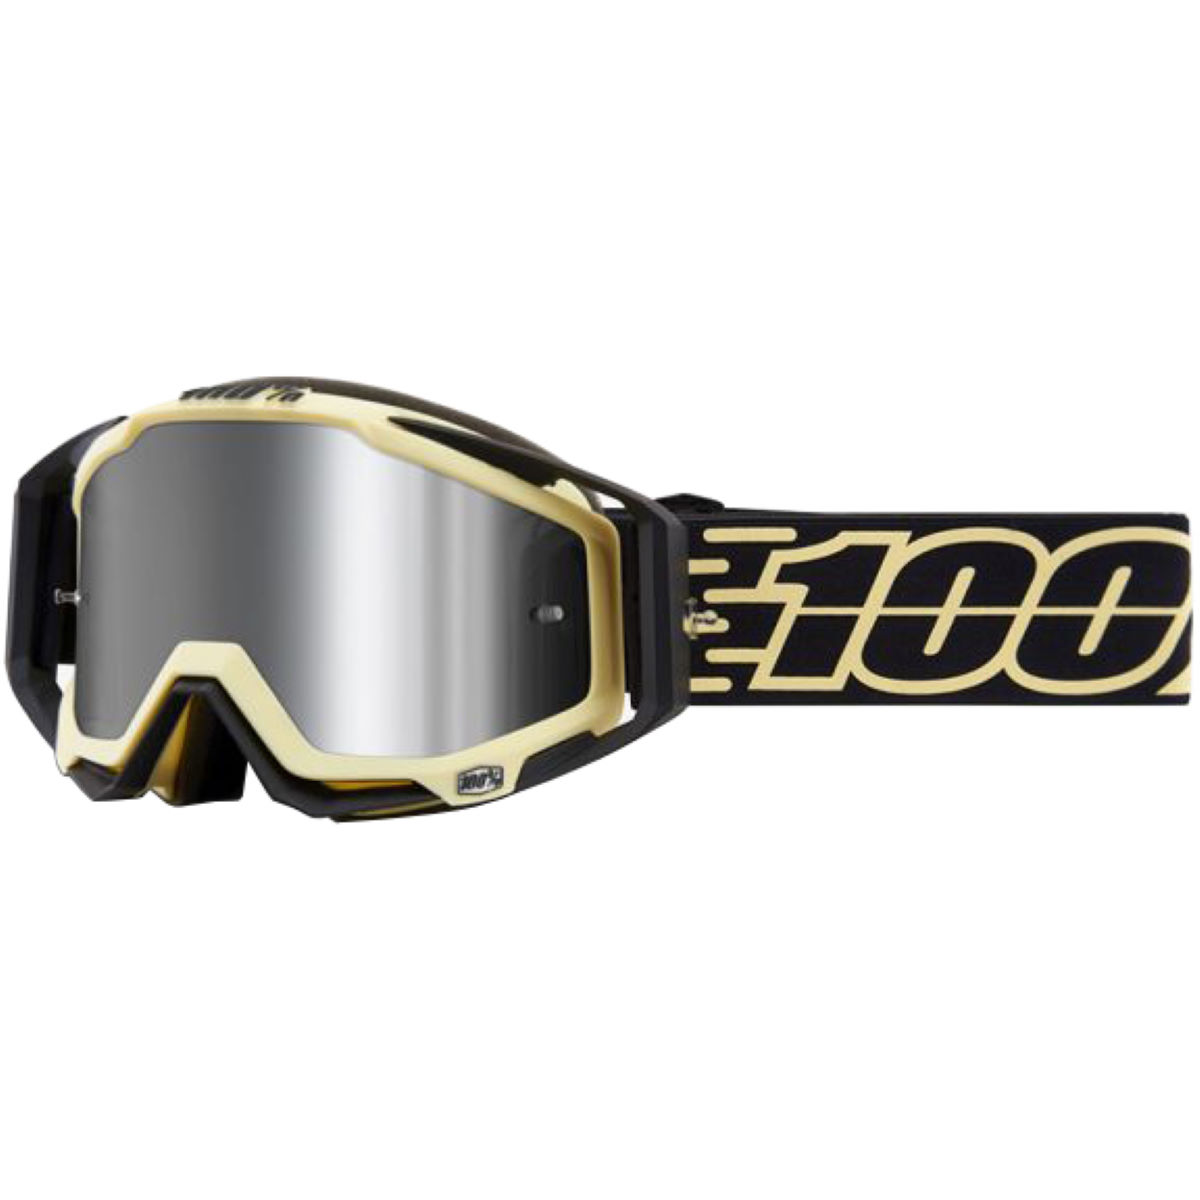 100% 100% Racecraft Plus Goggles Mirror Lens   Cycling Goggles